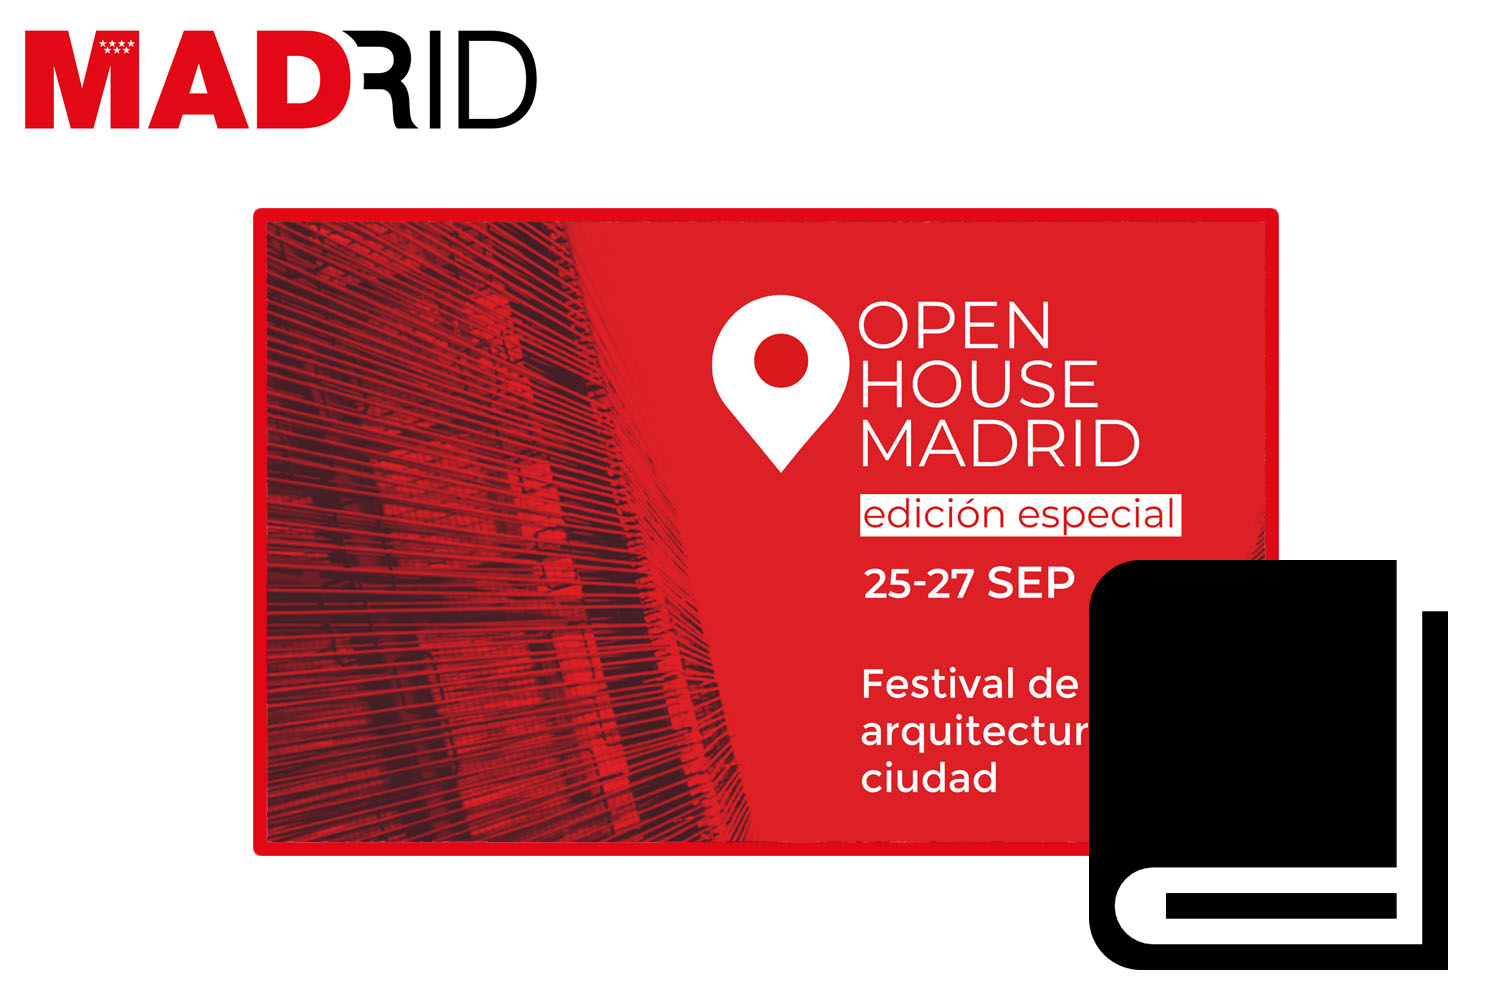 Open House Madrid 2020